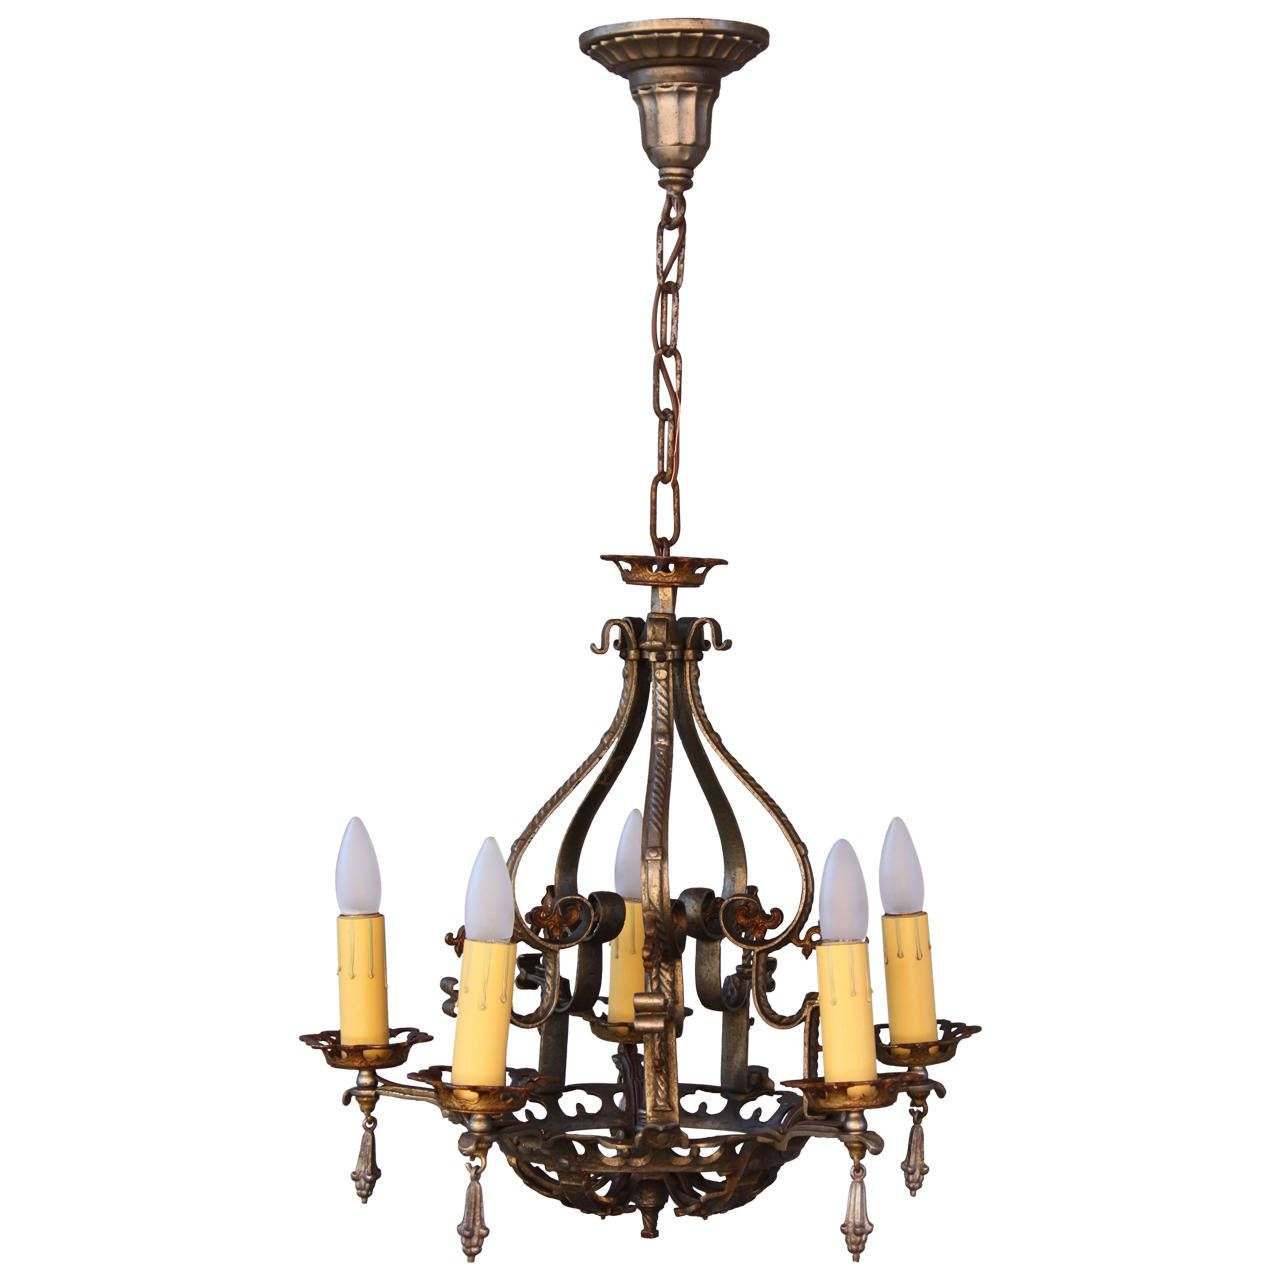 1920s spanish revival chandelier spanish revival and pendant lighting 1920s spanish revival chandelier arubaitofo Gallery